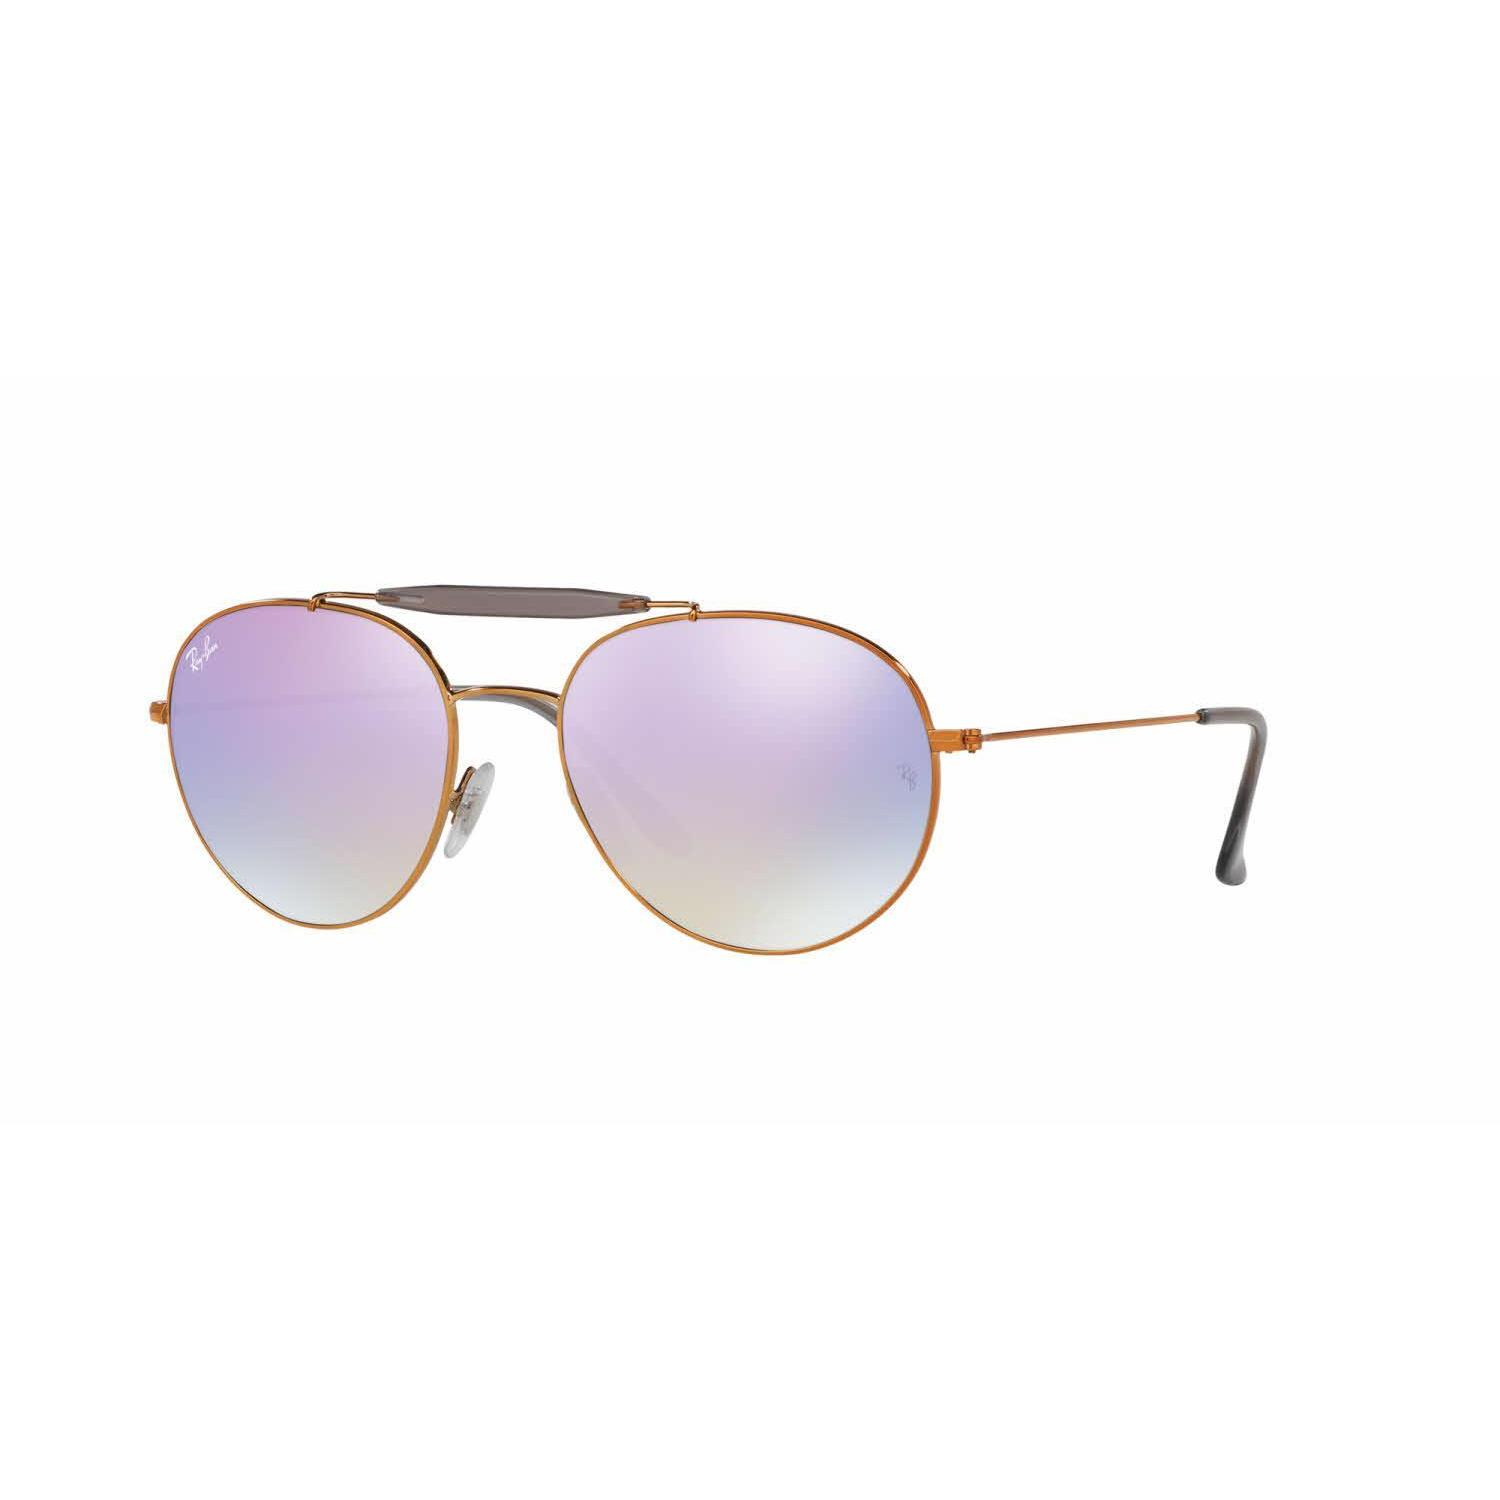 7e306946a9f536 Shop Ray Ban Women RB3540 198 7X Bronze Copper Metal Phantos Sunglasses -  Free Shipping Today - Overstock.com - 13325438